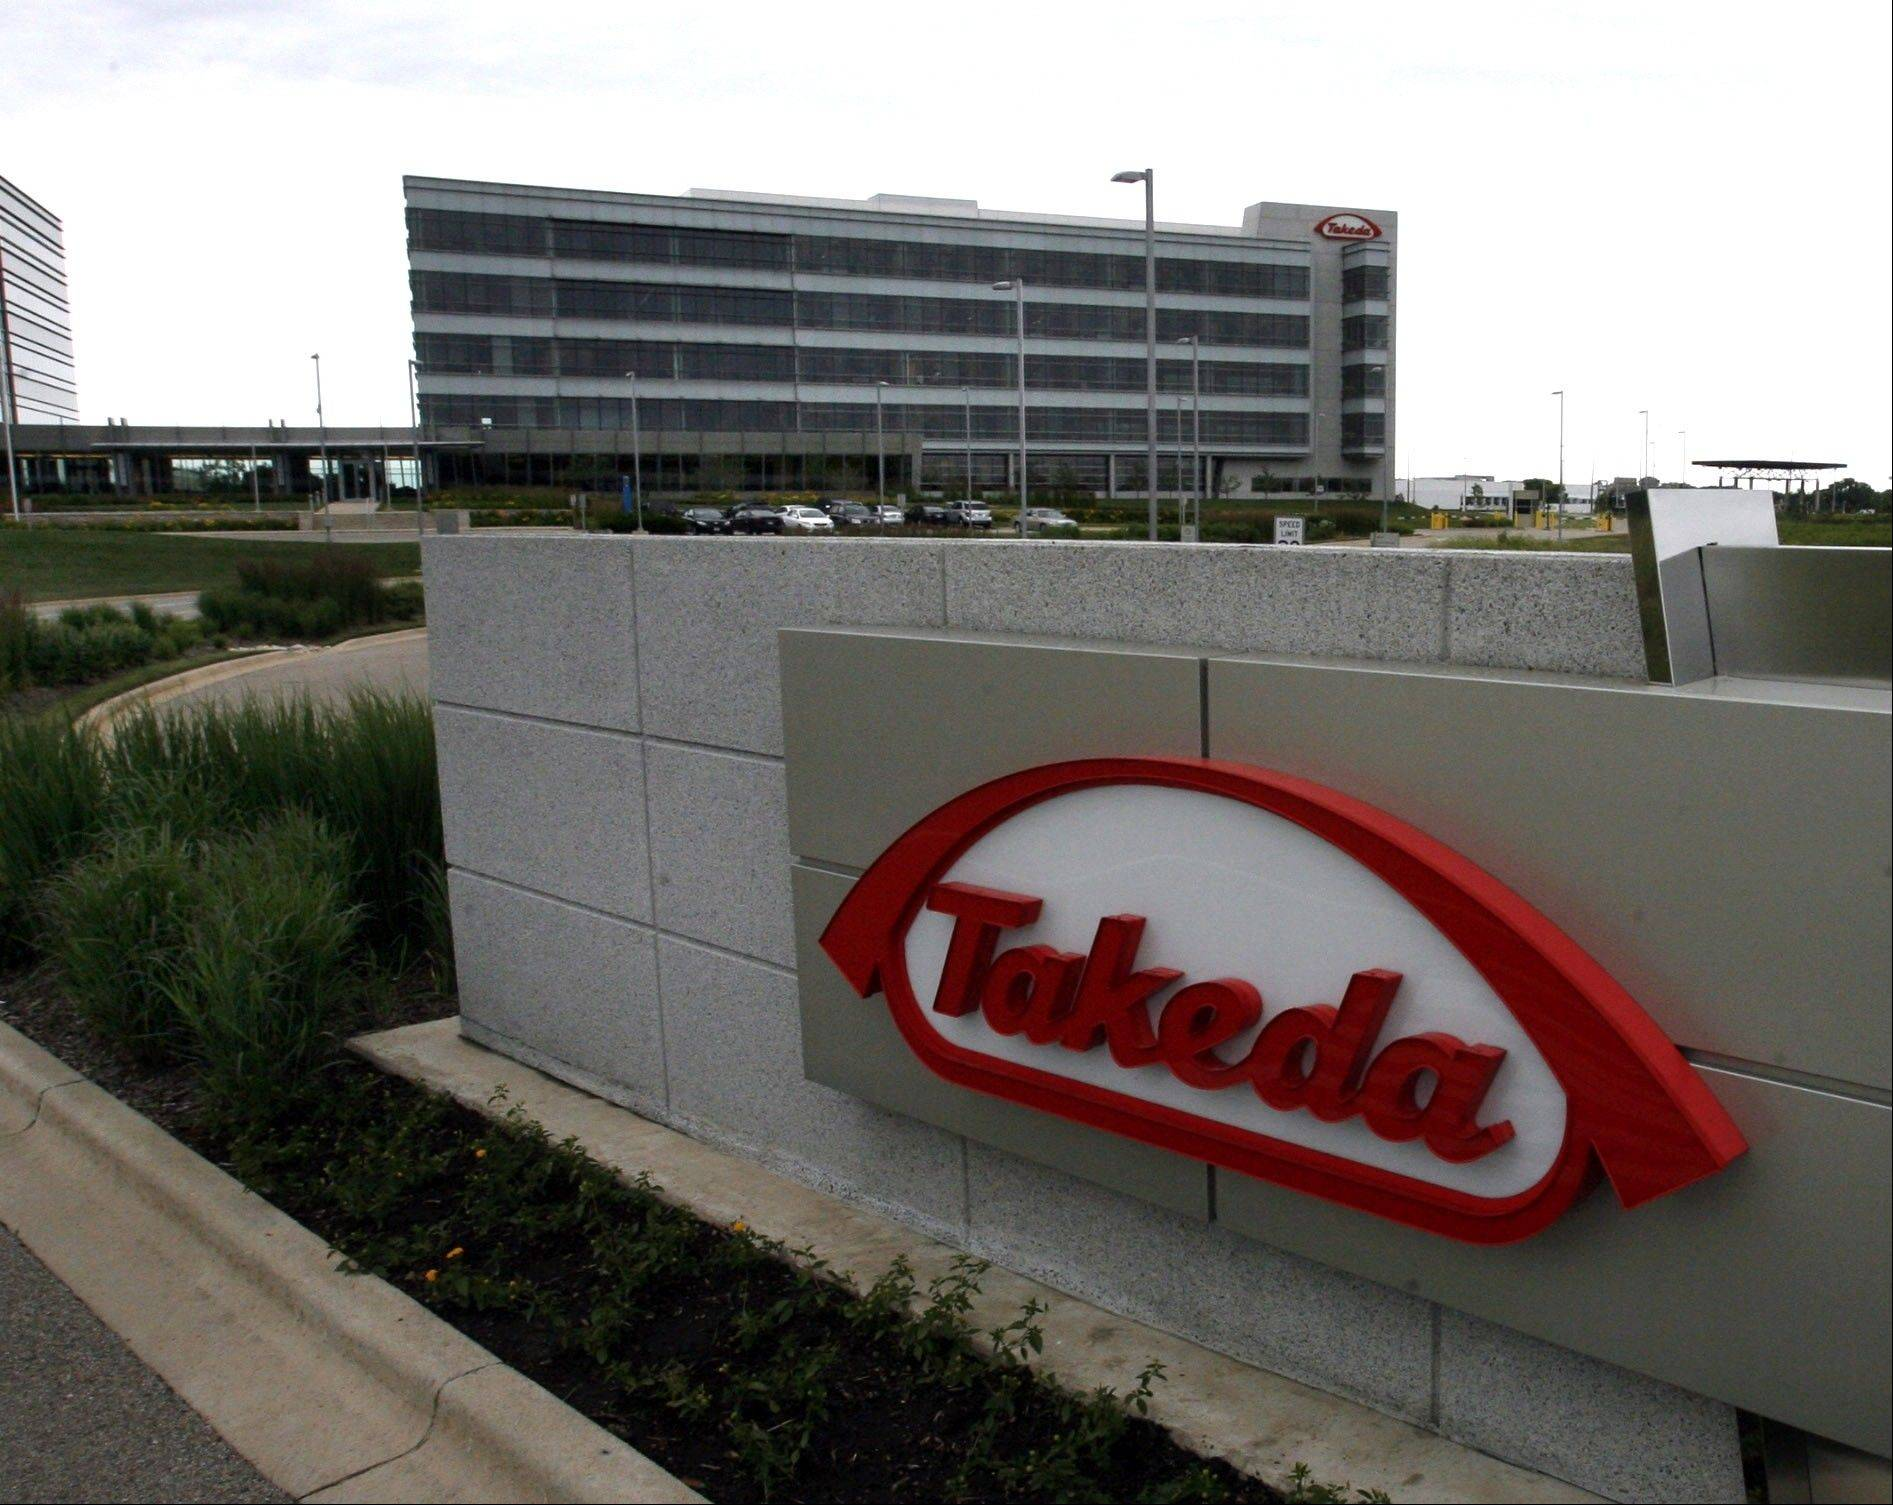 Takeda Pharmaceutical Co. subsidiary Takeda America Holdings, Inc. of Deerfield, has acquired URL Pharma Inc. for $800 million.